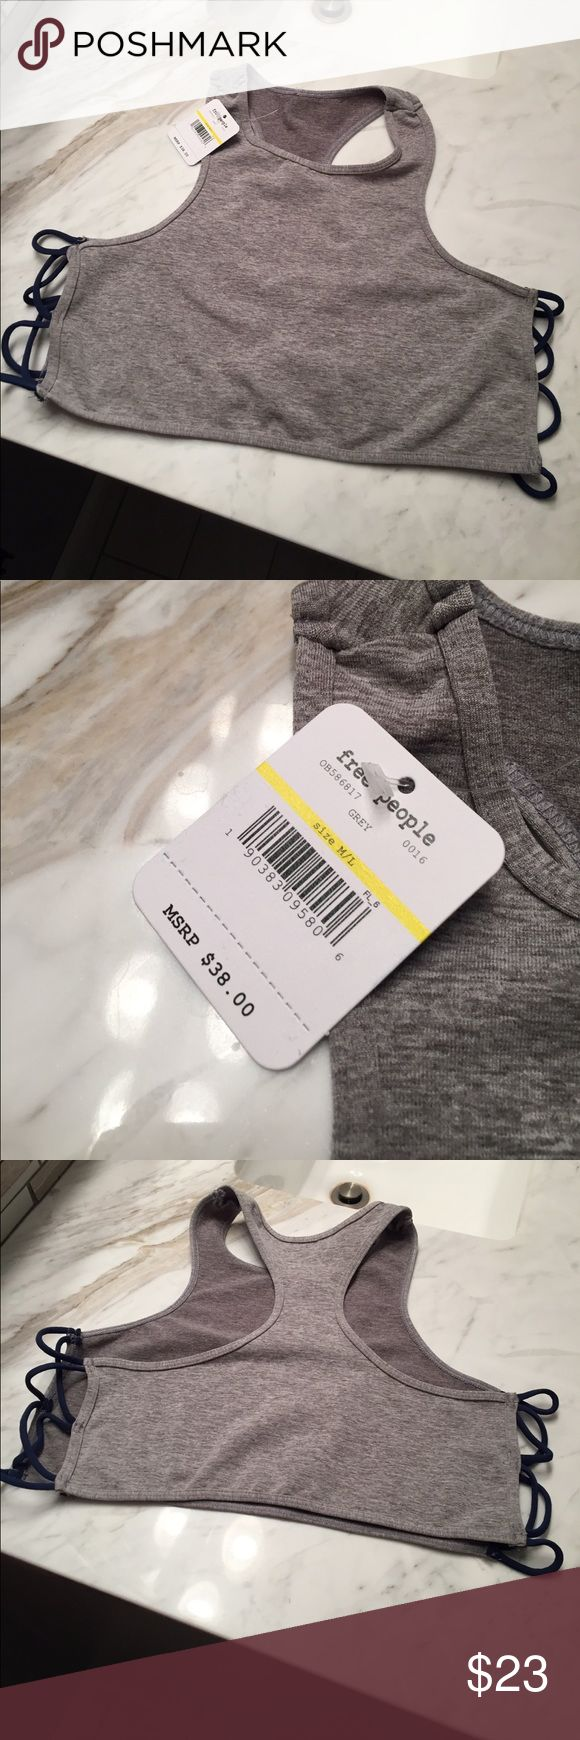 • NWT: free people sports bra • Gray and navy blue sports bra. Brand is free people. NWT never worn. Size M/L. Super cute. Same or next day shipping, smoke free home. For my reference only: item #63 Free People Intimates & Sleepwear Bras